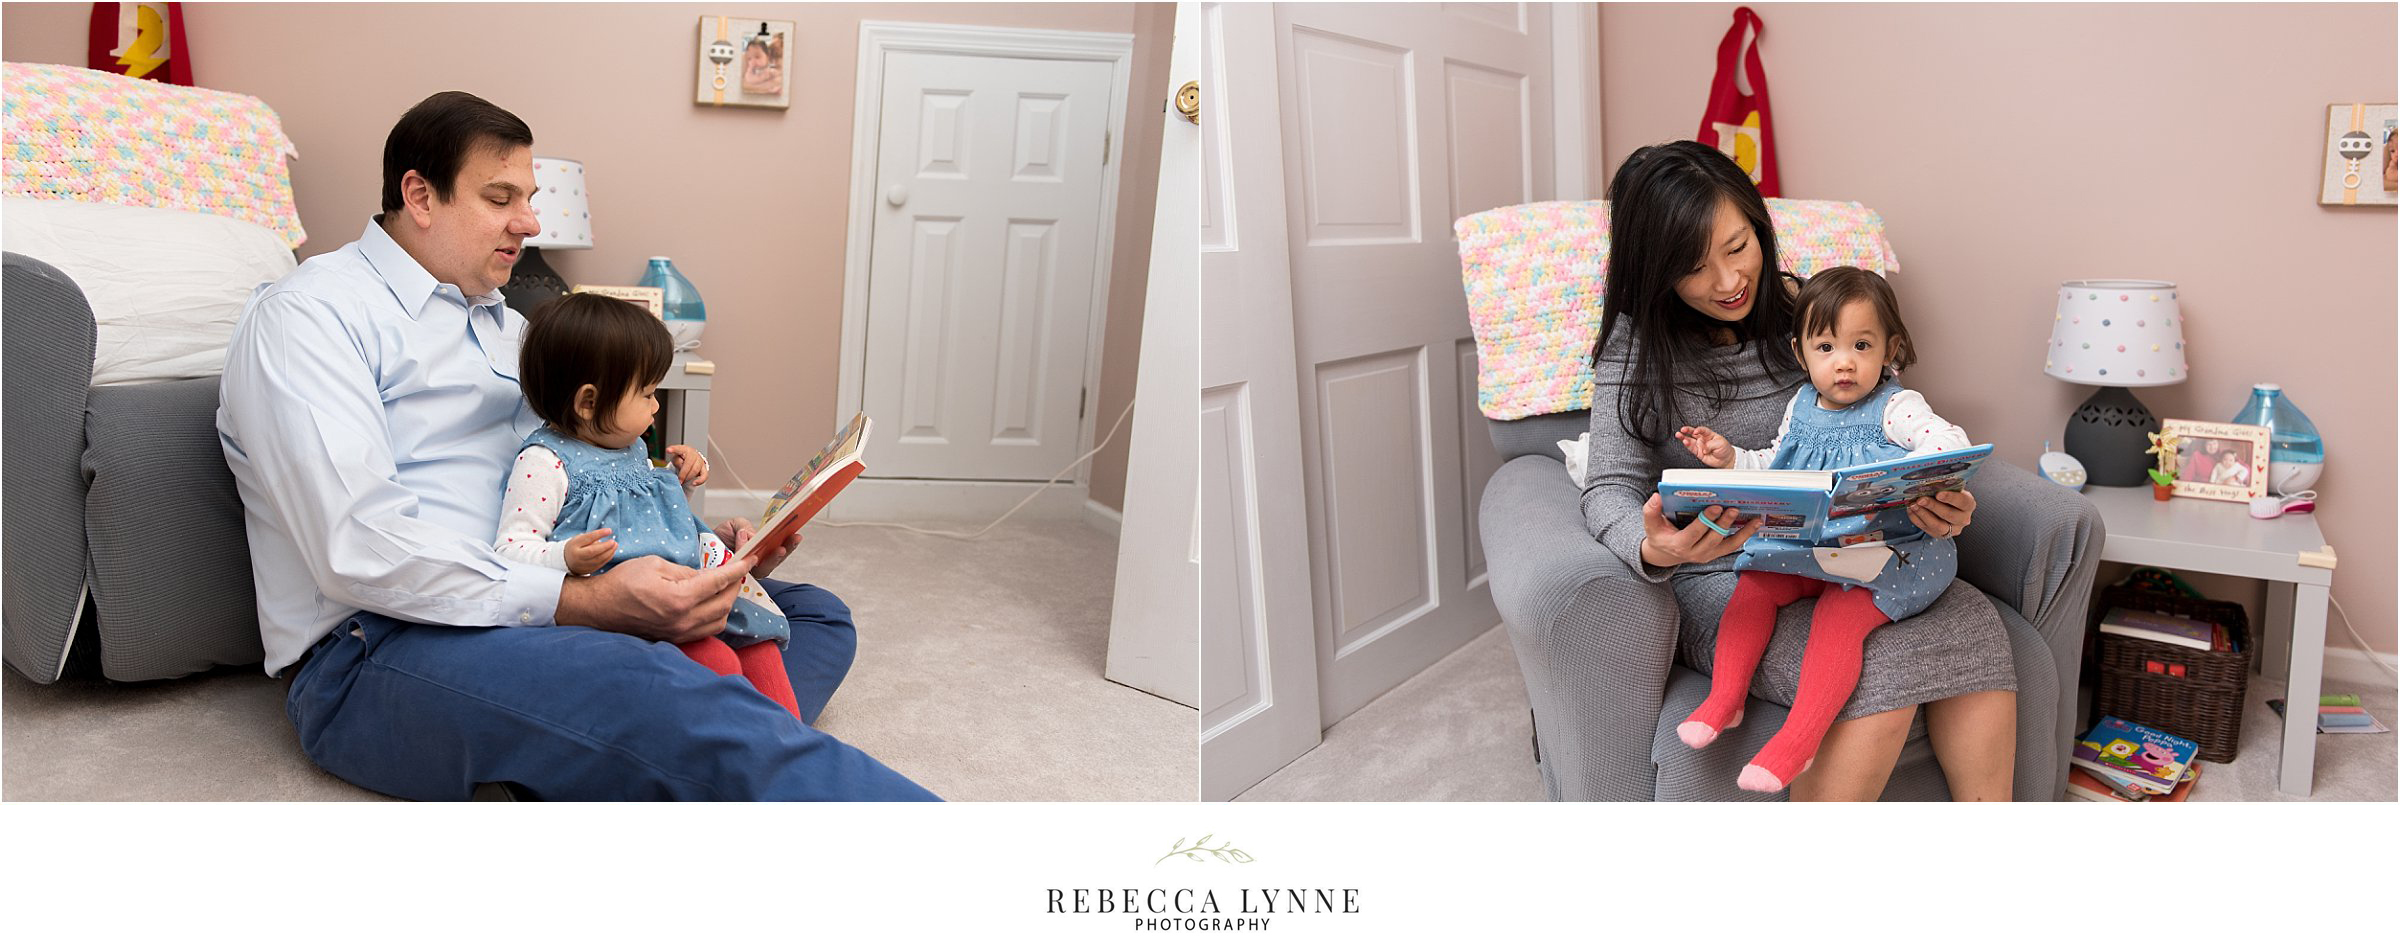 maternity photographer ct. mom and dad reading books in nursery.